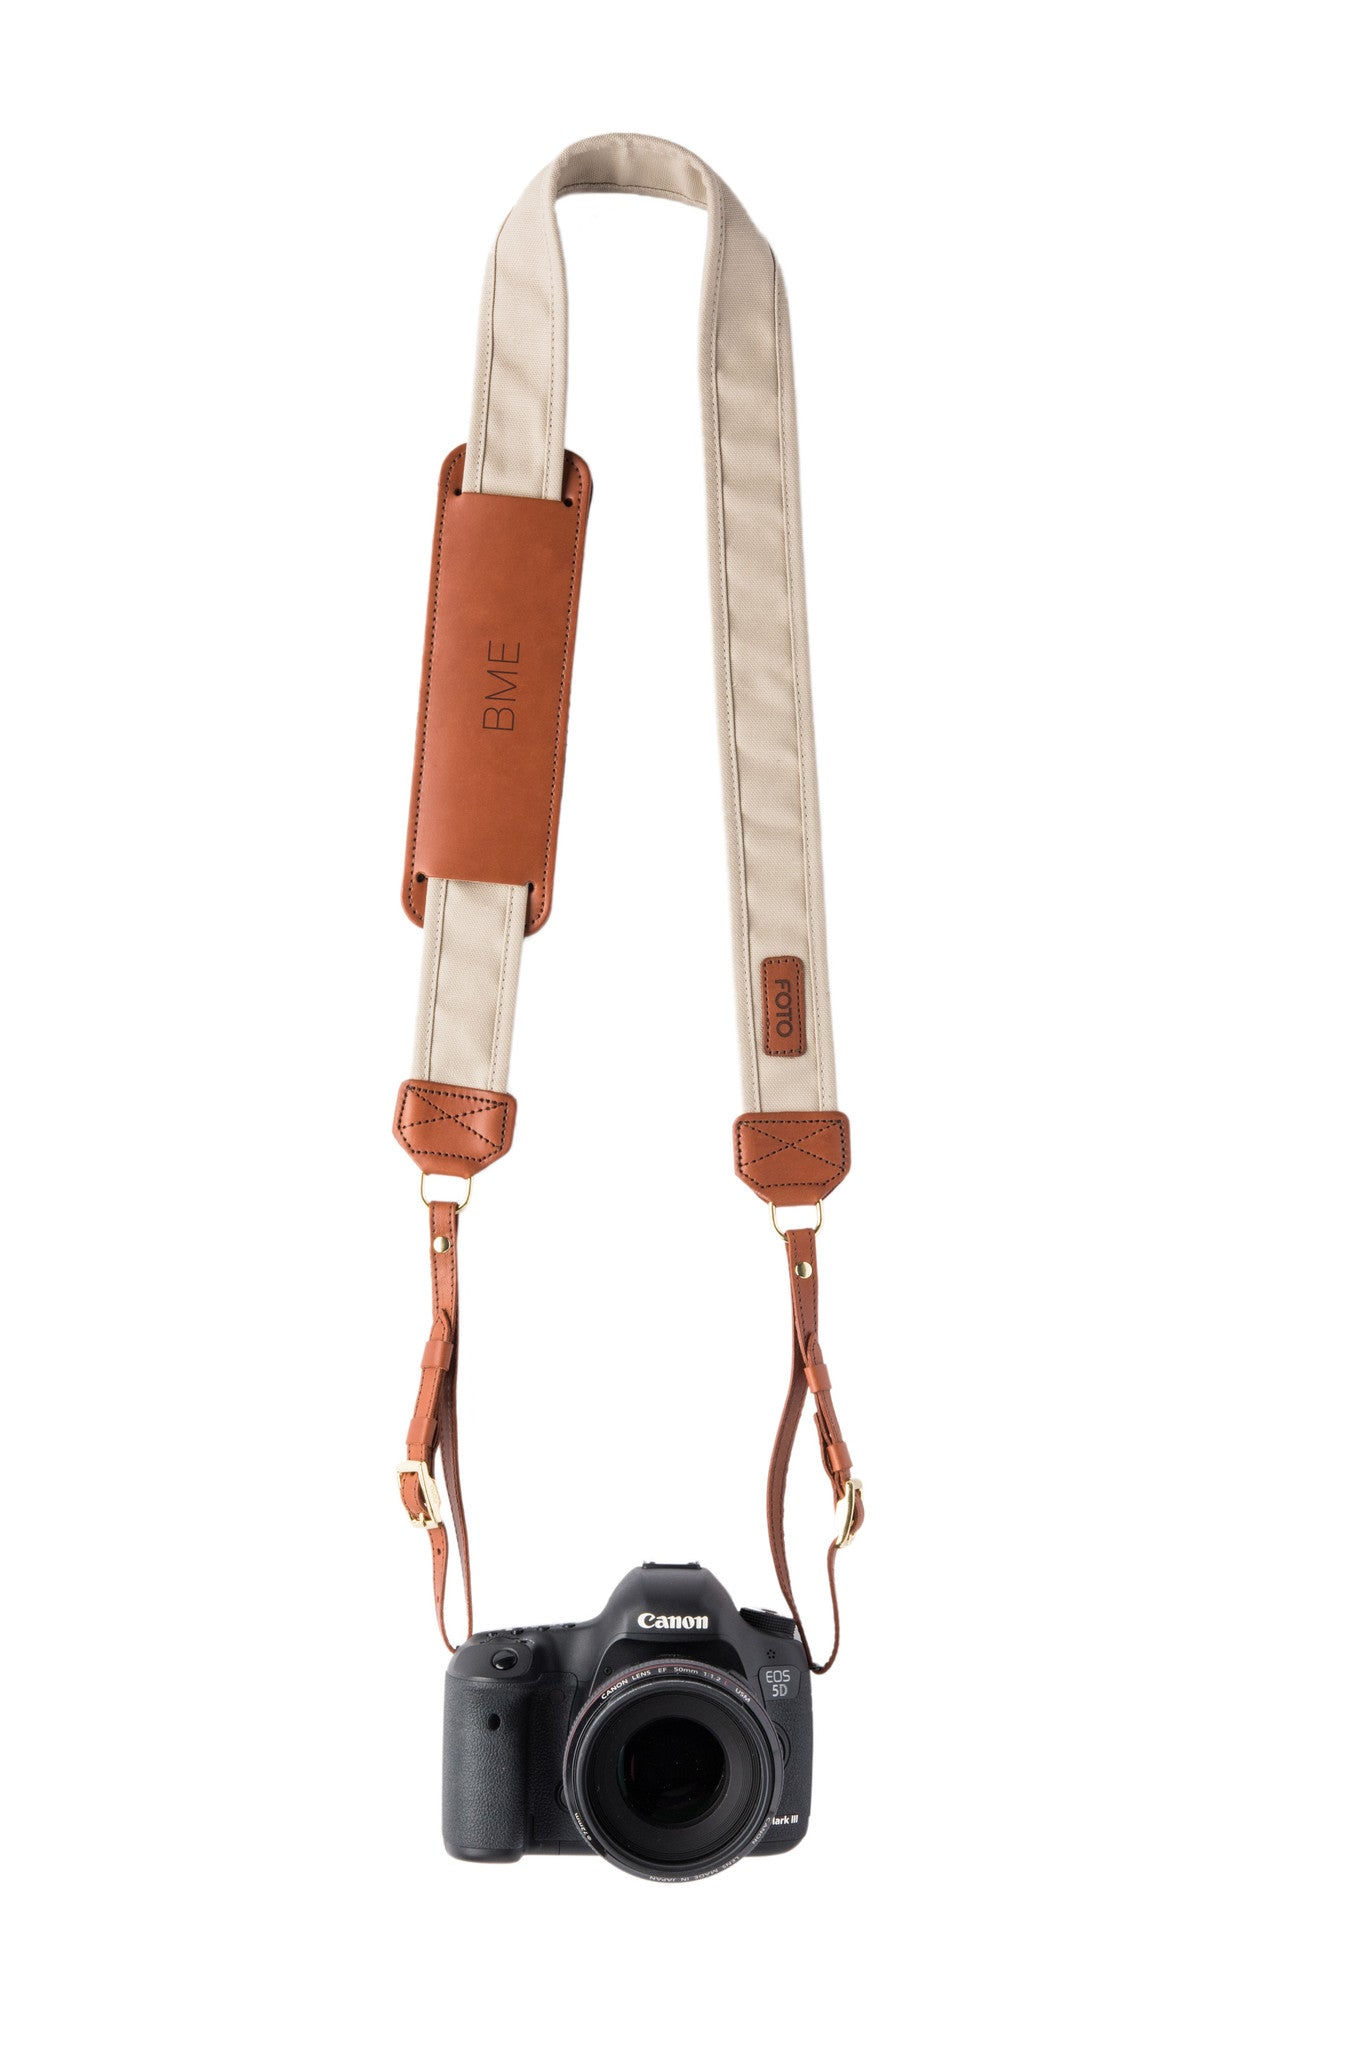 FOTO | Stone Fotostrap for New Moms - a light tan canvas and genuine leather camera strap that can be personalized with a monogram or personal graphic, making it the perfect personalized gift!